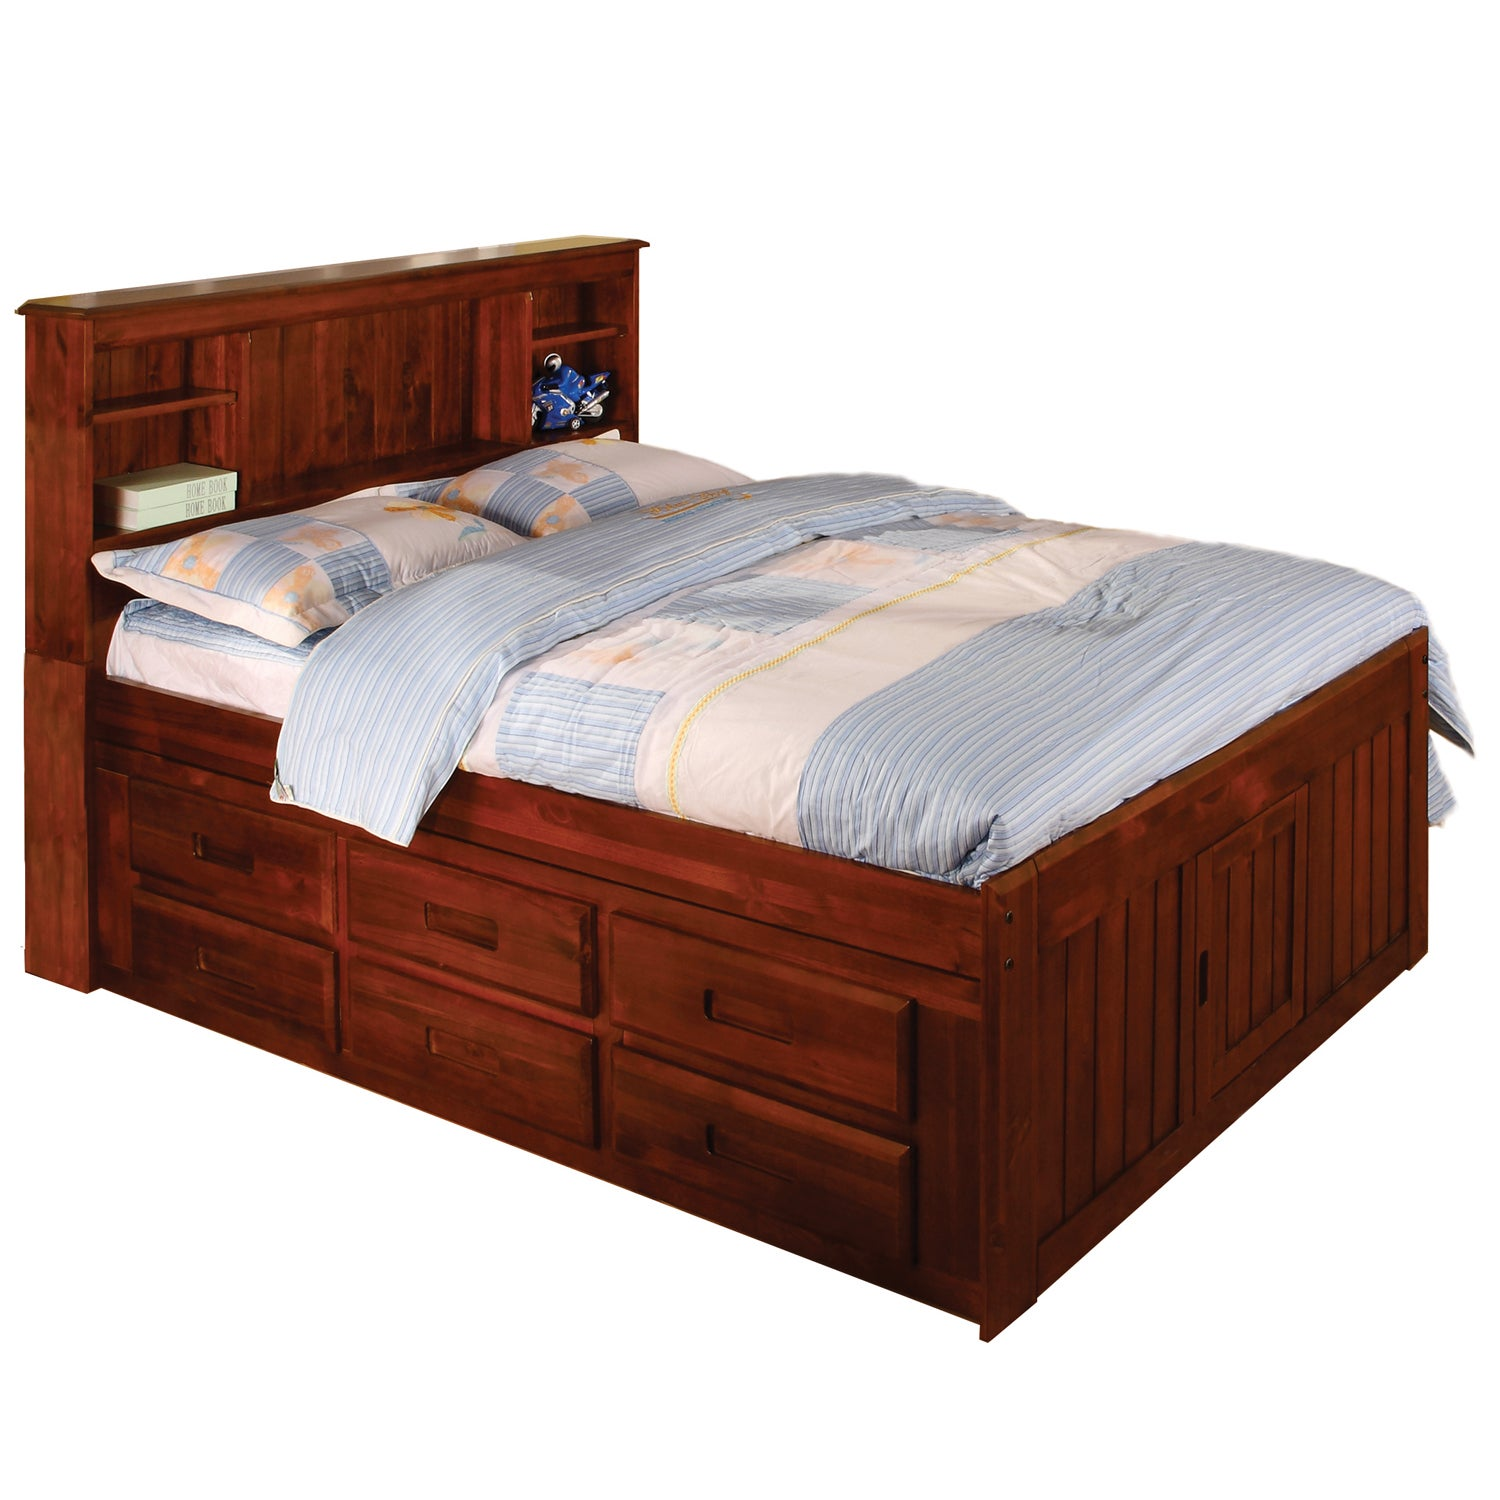 Merlot Bookcase 6-drawer Full-size Bed - 14108783 - Overstock.com ...